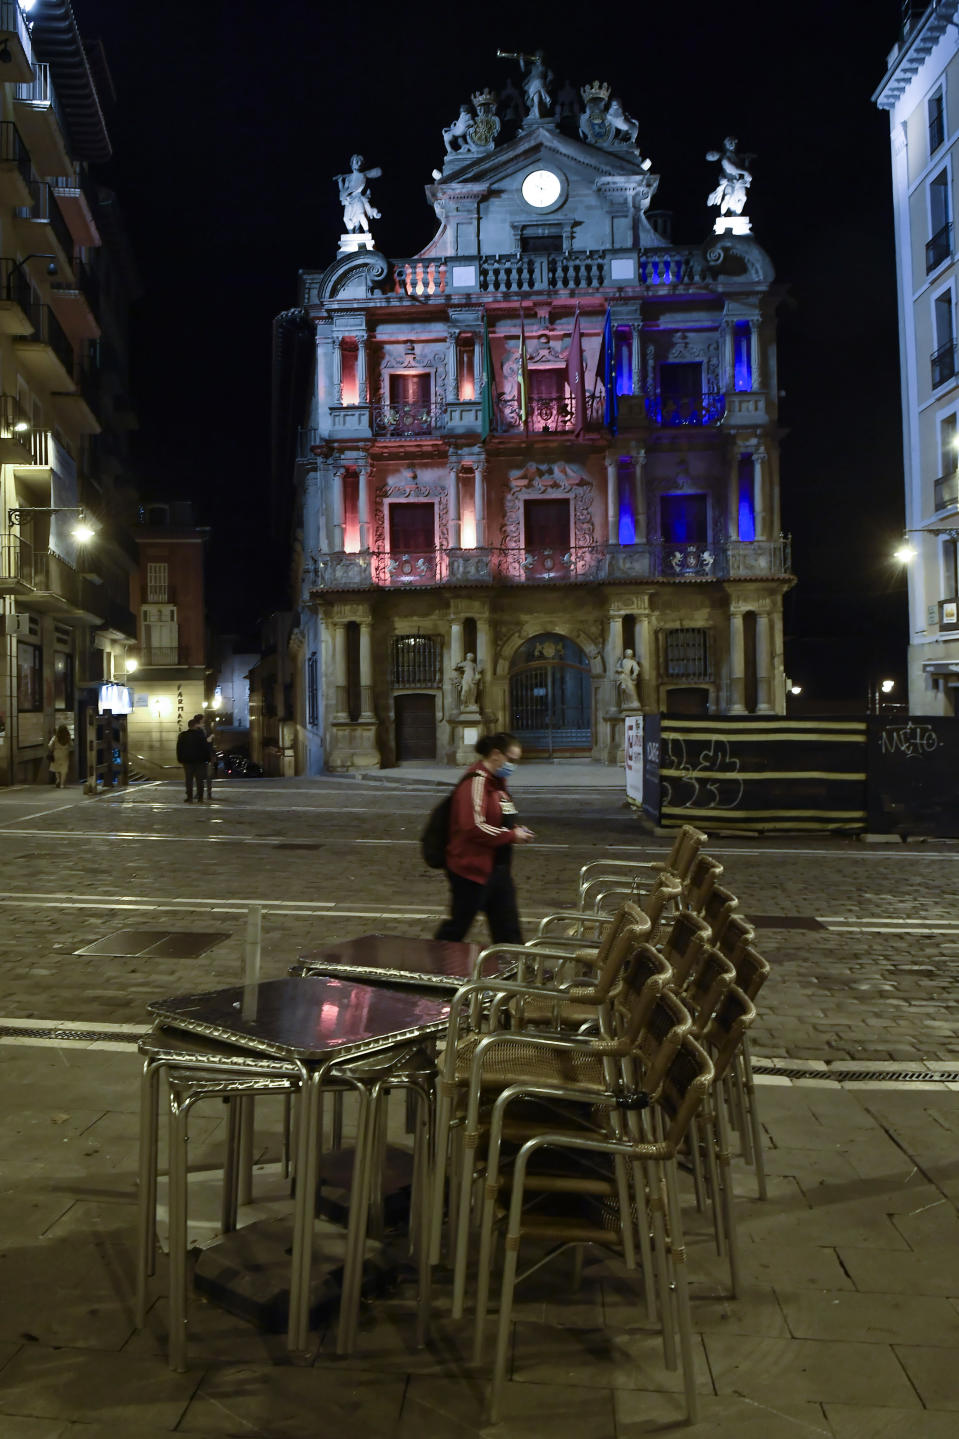 A resident wearing face mask protection walks along an empty Ayuntamiento square, in Pamplona, northern Spain, Saturday, Oct. 24, 2020, as new measures against the coronavirus began in the Navarra province where all bar and restaurants are closed for 15 days from midnight Wednesday. (AP Photo/Alvaro Barrientos)